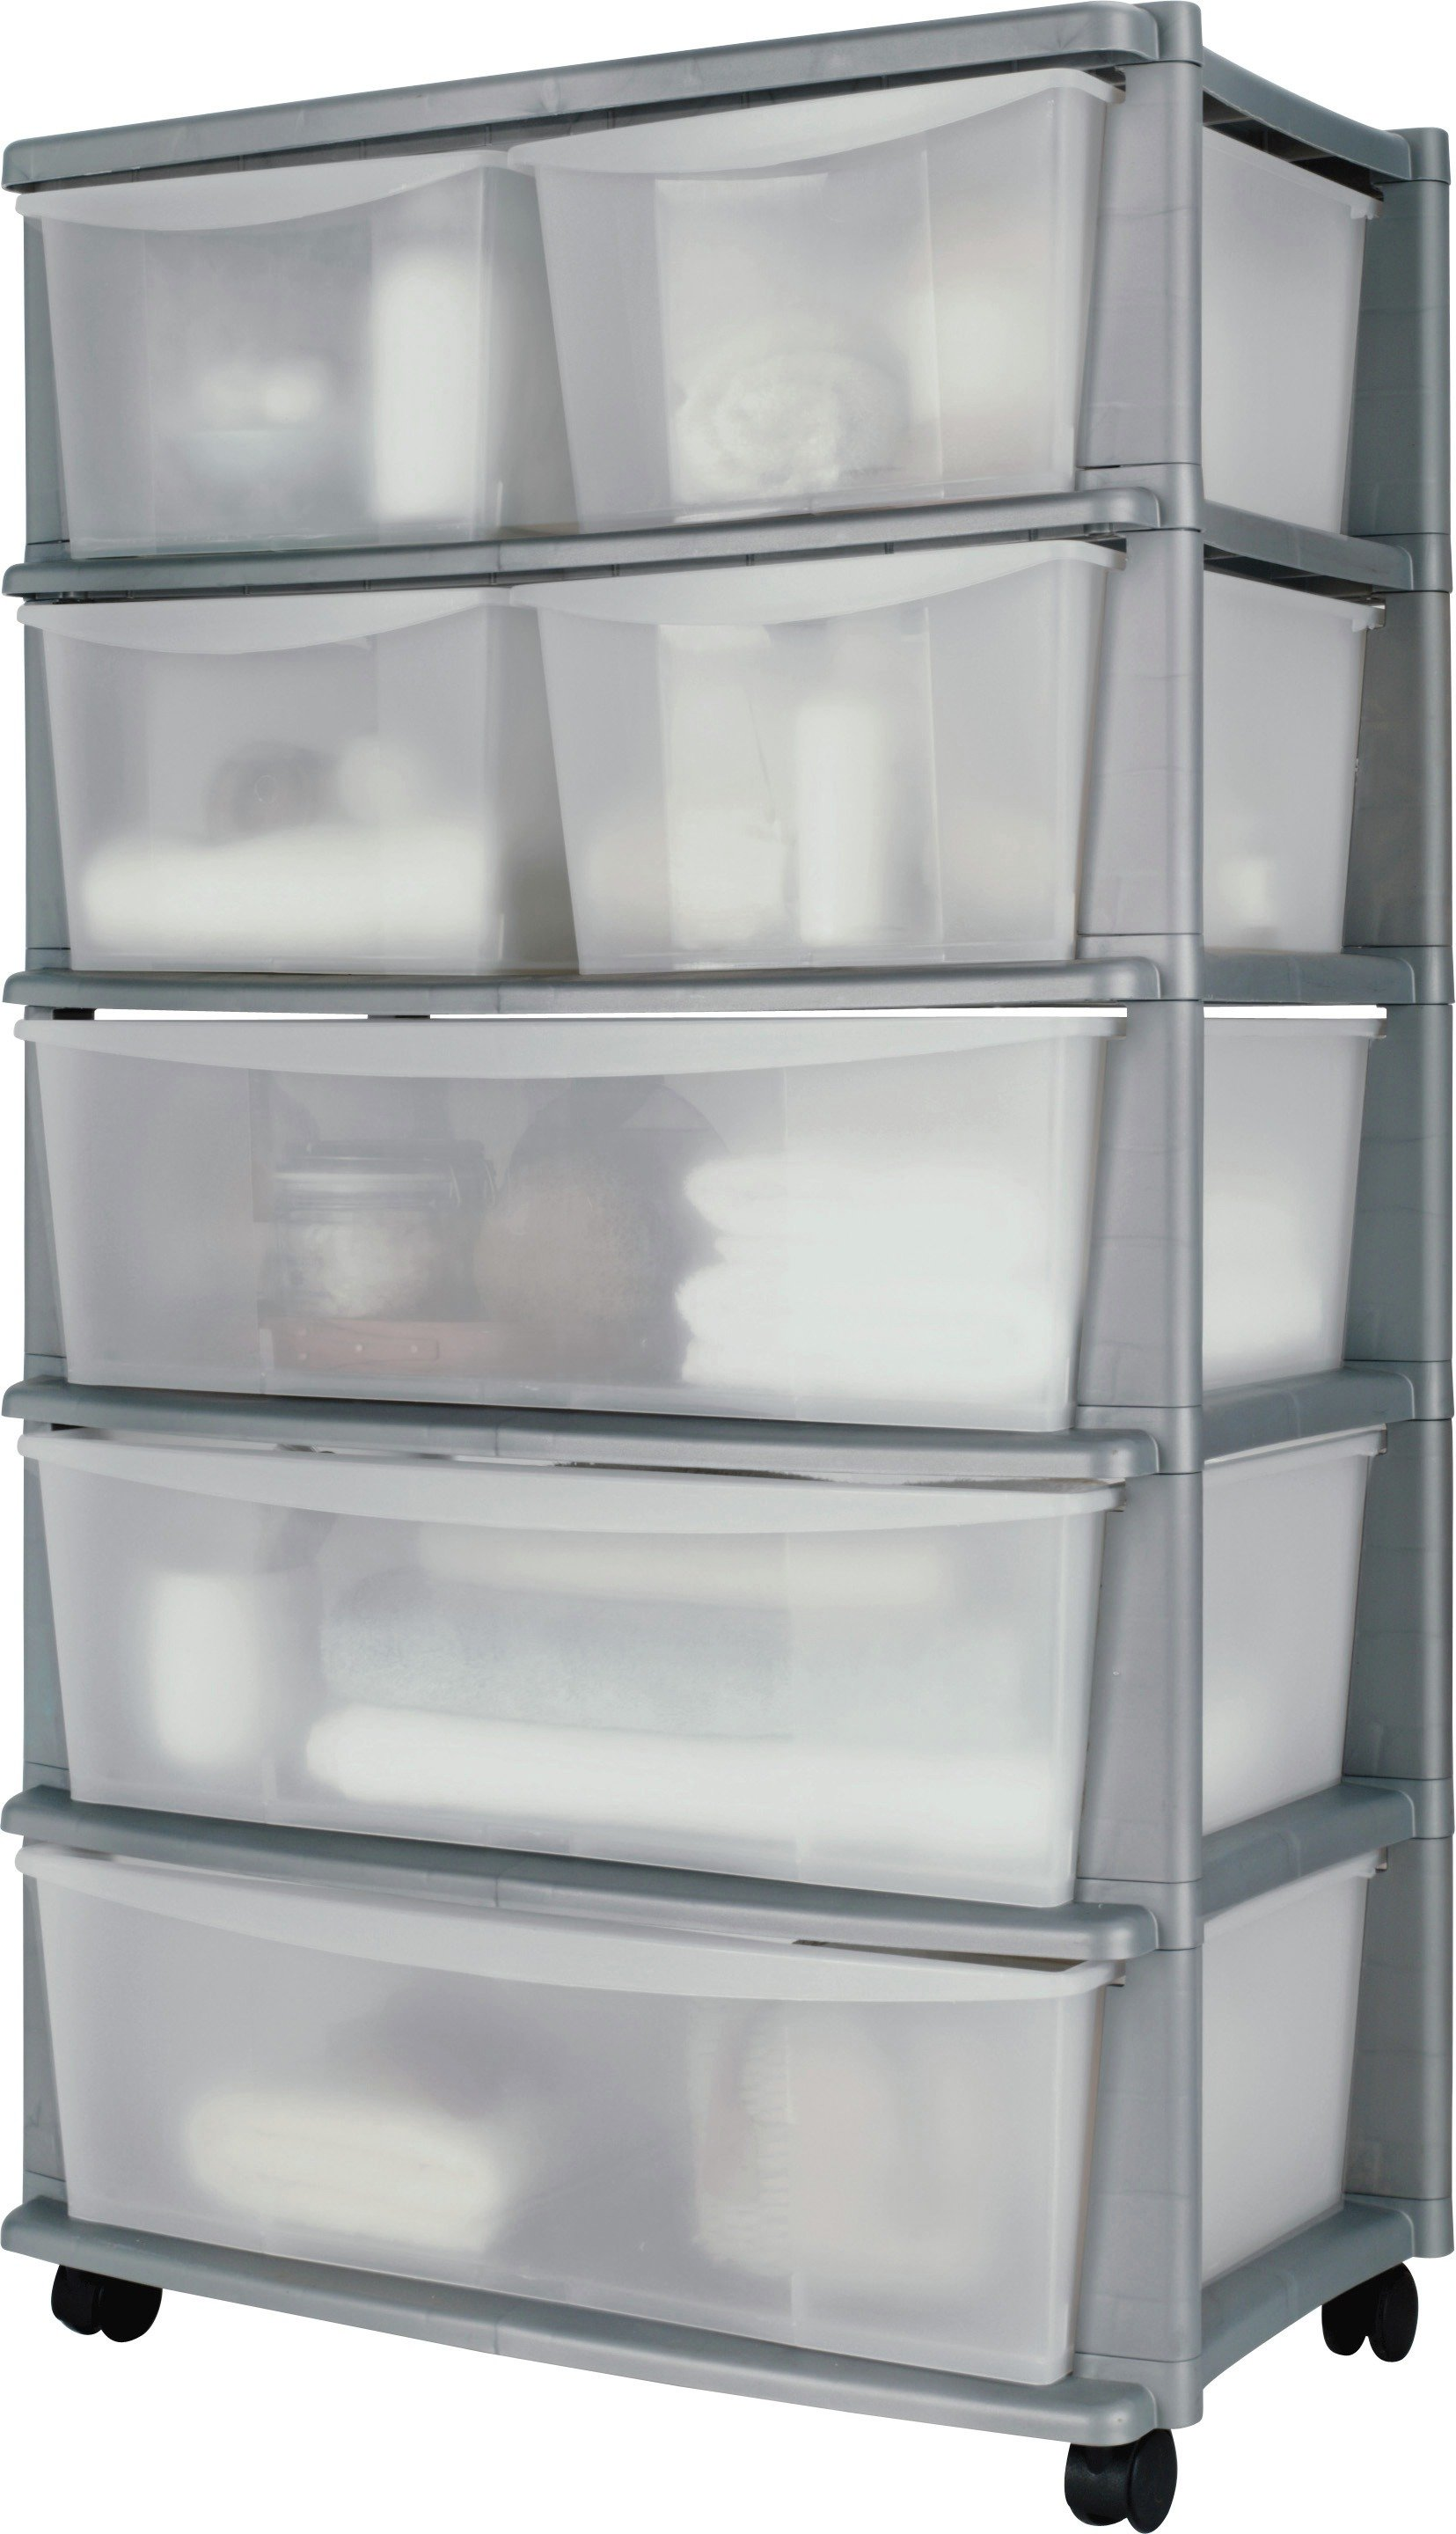 Sale On Home 7 Drawer Silver Plastic Wide Tower Storage